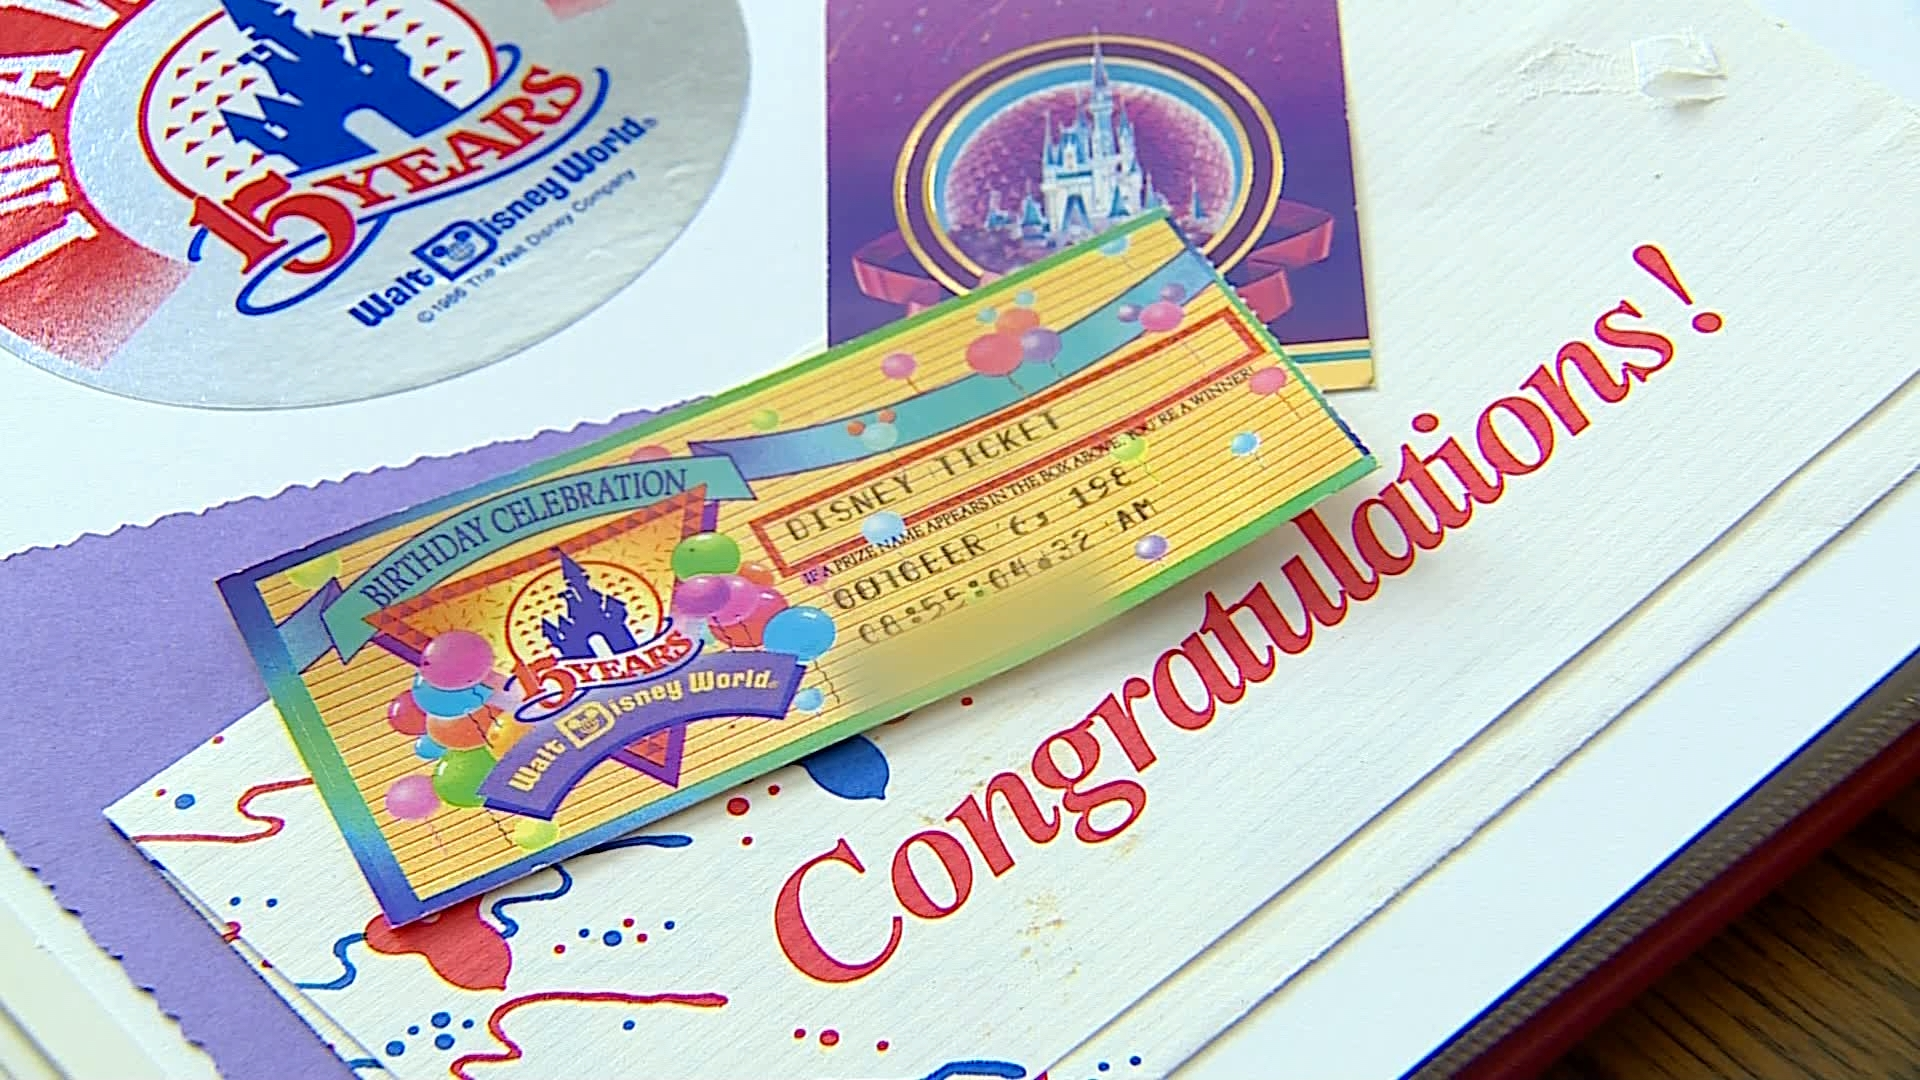 A photo of the free pass the Stellema Family won in 1986. (Aug. 20, 2019)